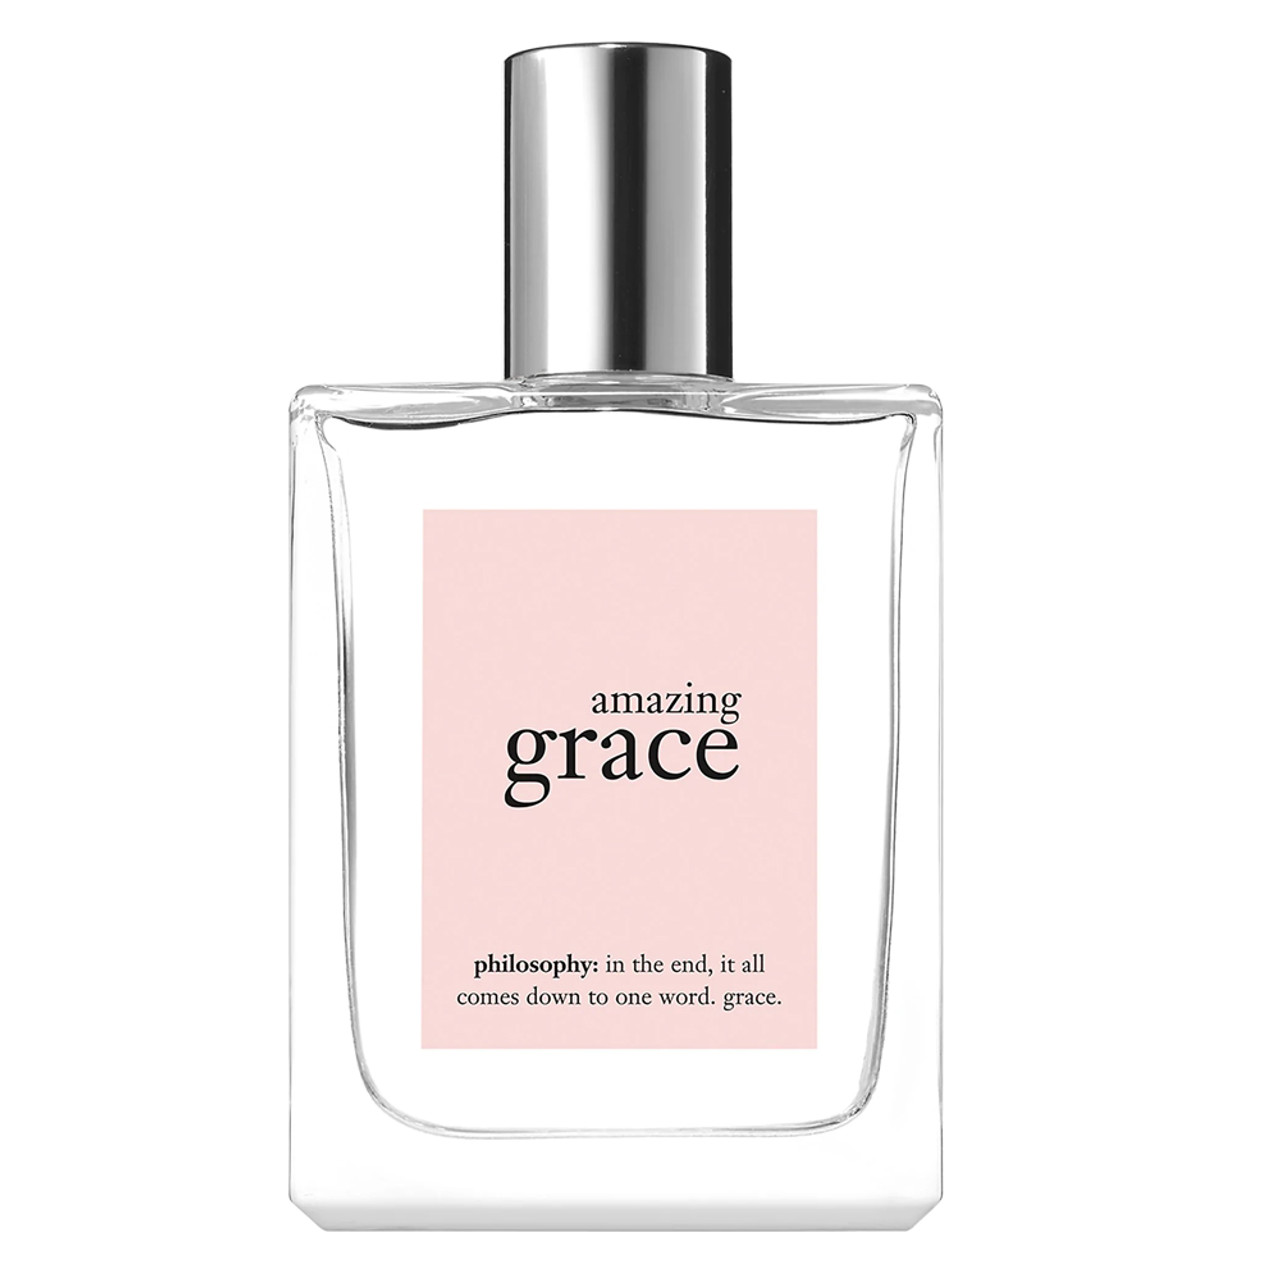 philosophy Amazing Grace Fragrance Eau De Toilette